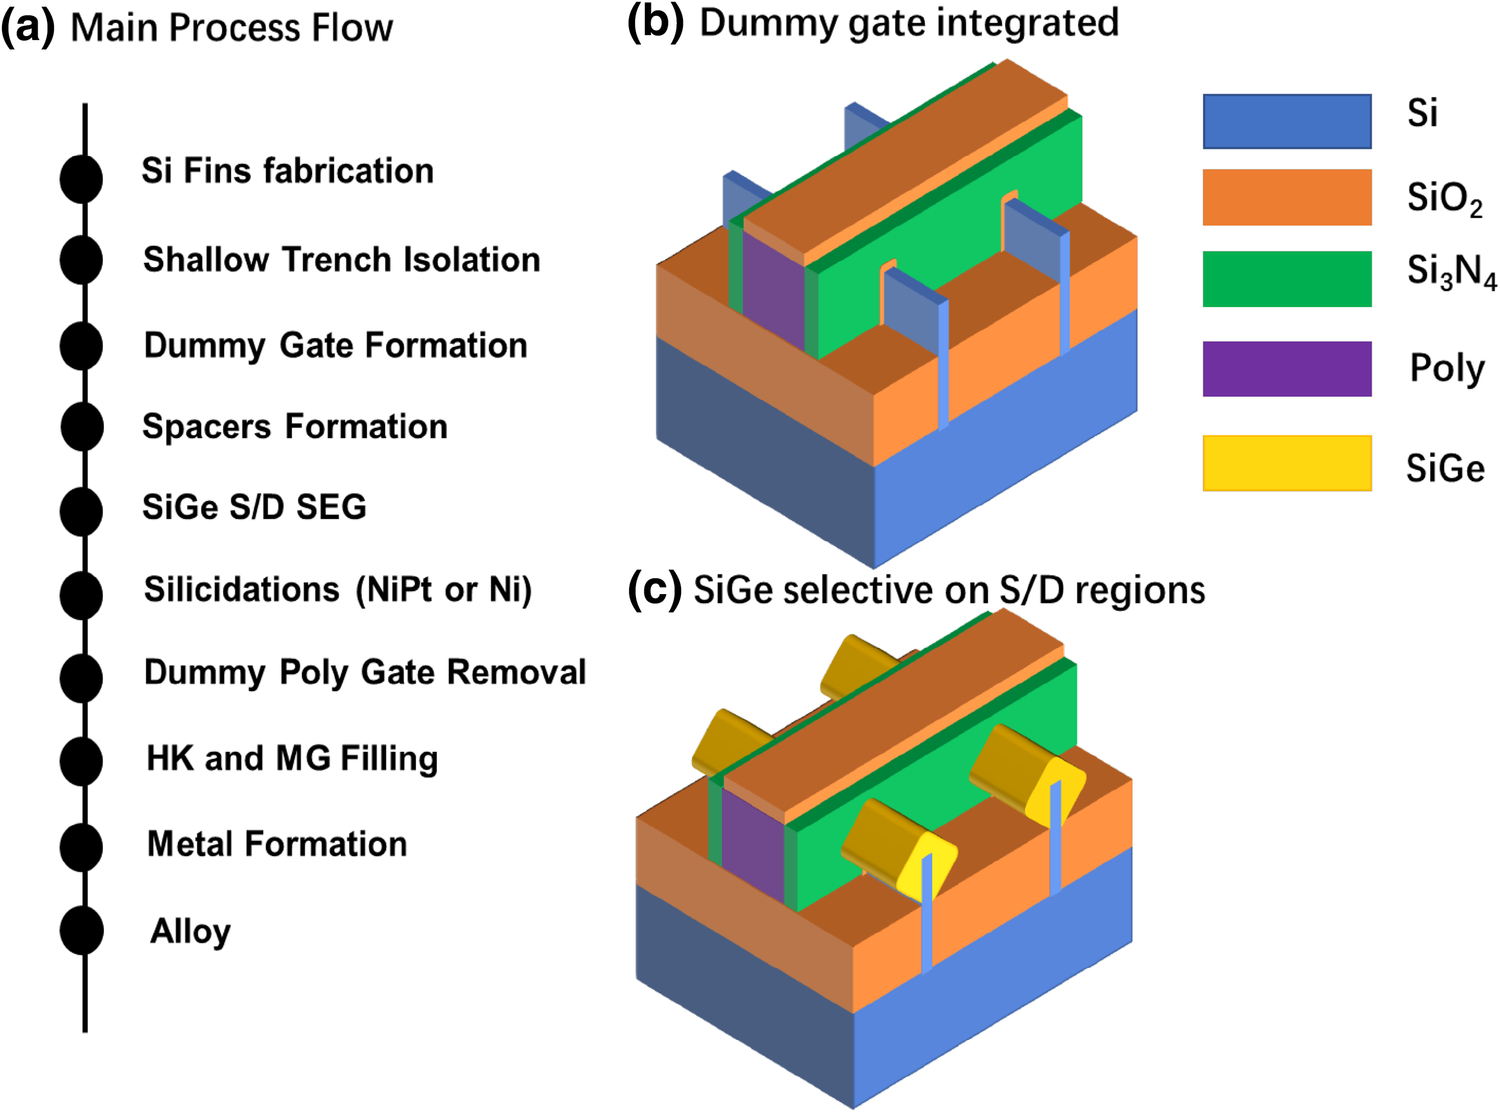 Growth of SiGe layers in source and drain regions for 10 nm